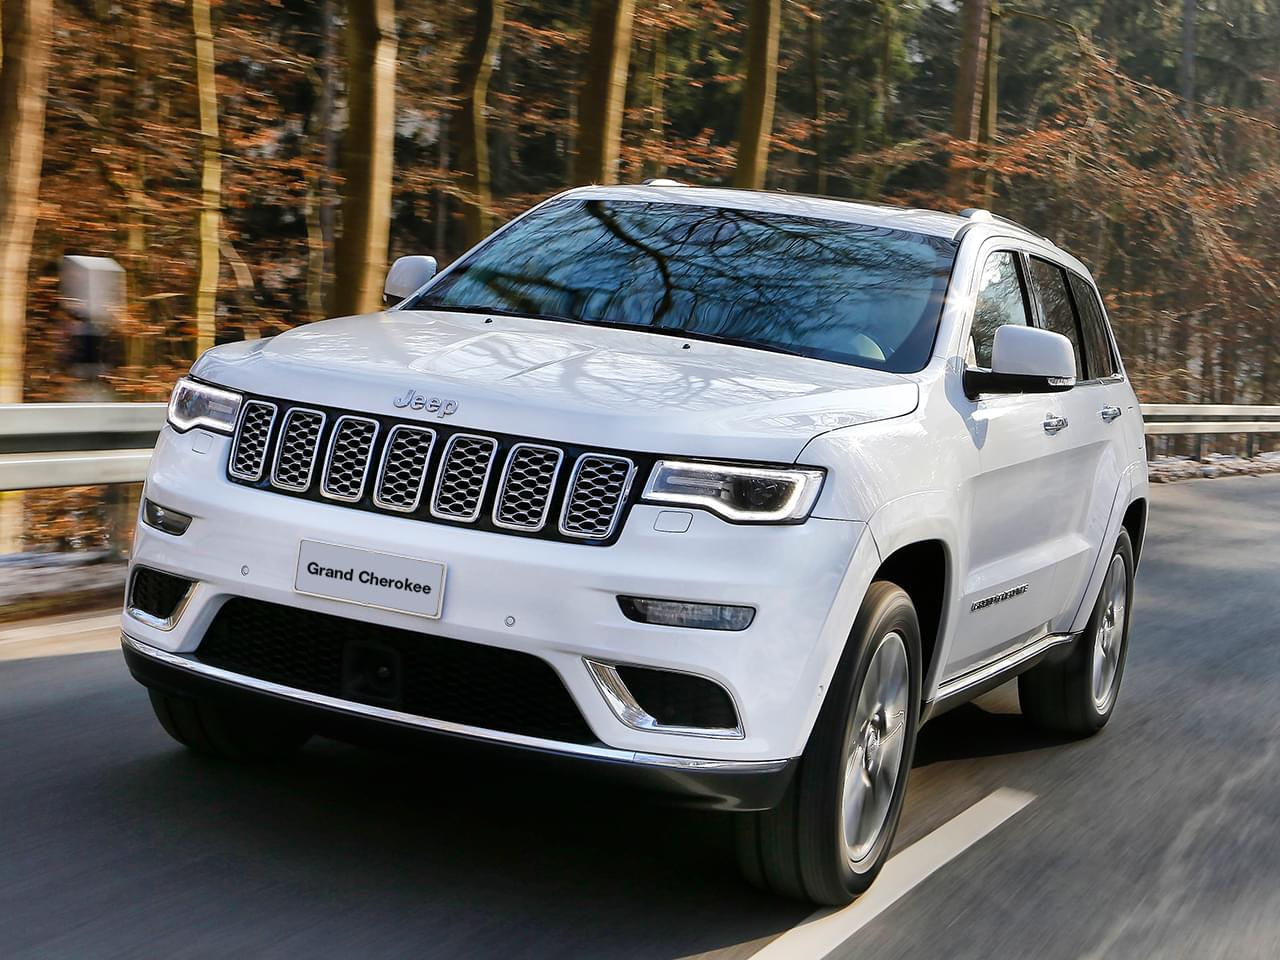 Jeep Grand Cherokee Summit 3.0l V6 250PS